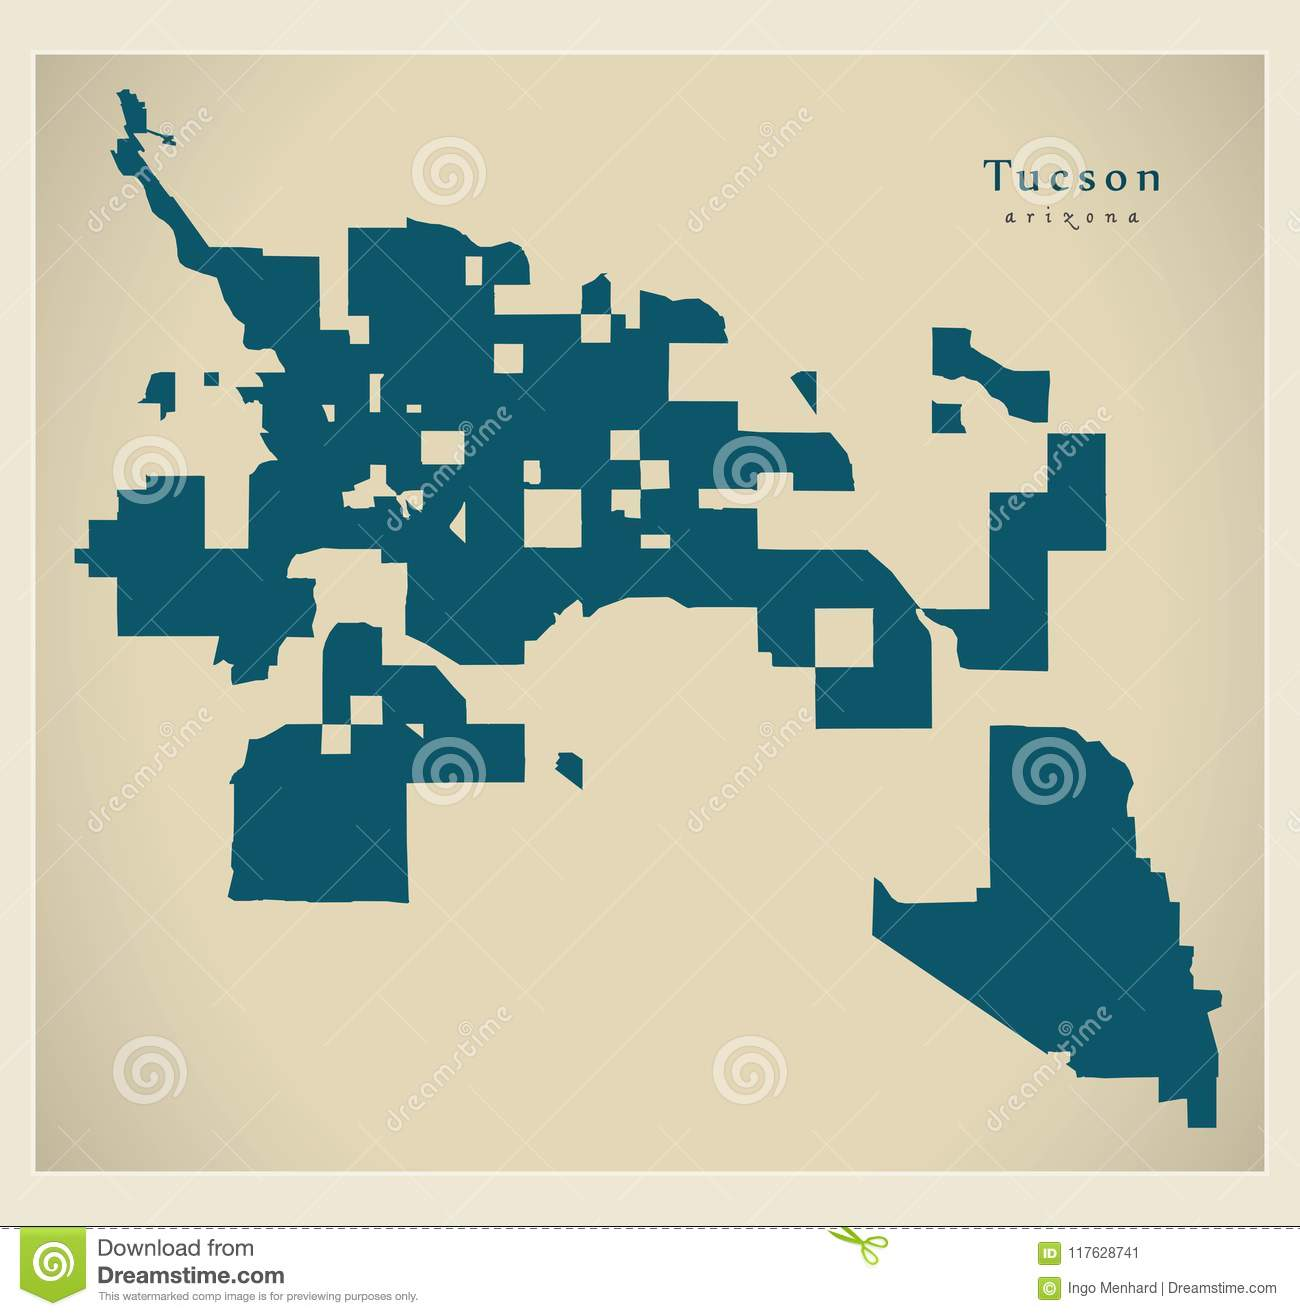 Modern City Map - Tucson Arizona City Of The USA Stock Vector ...